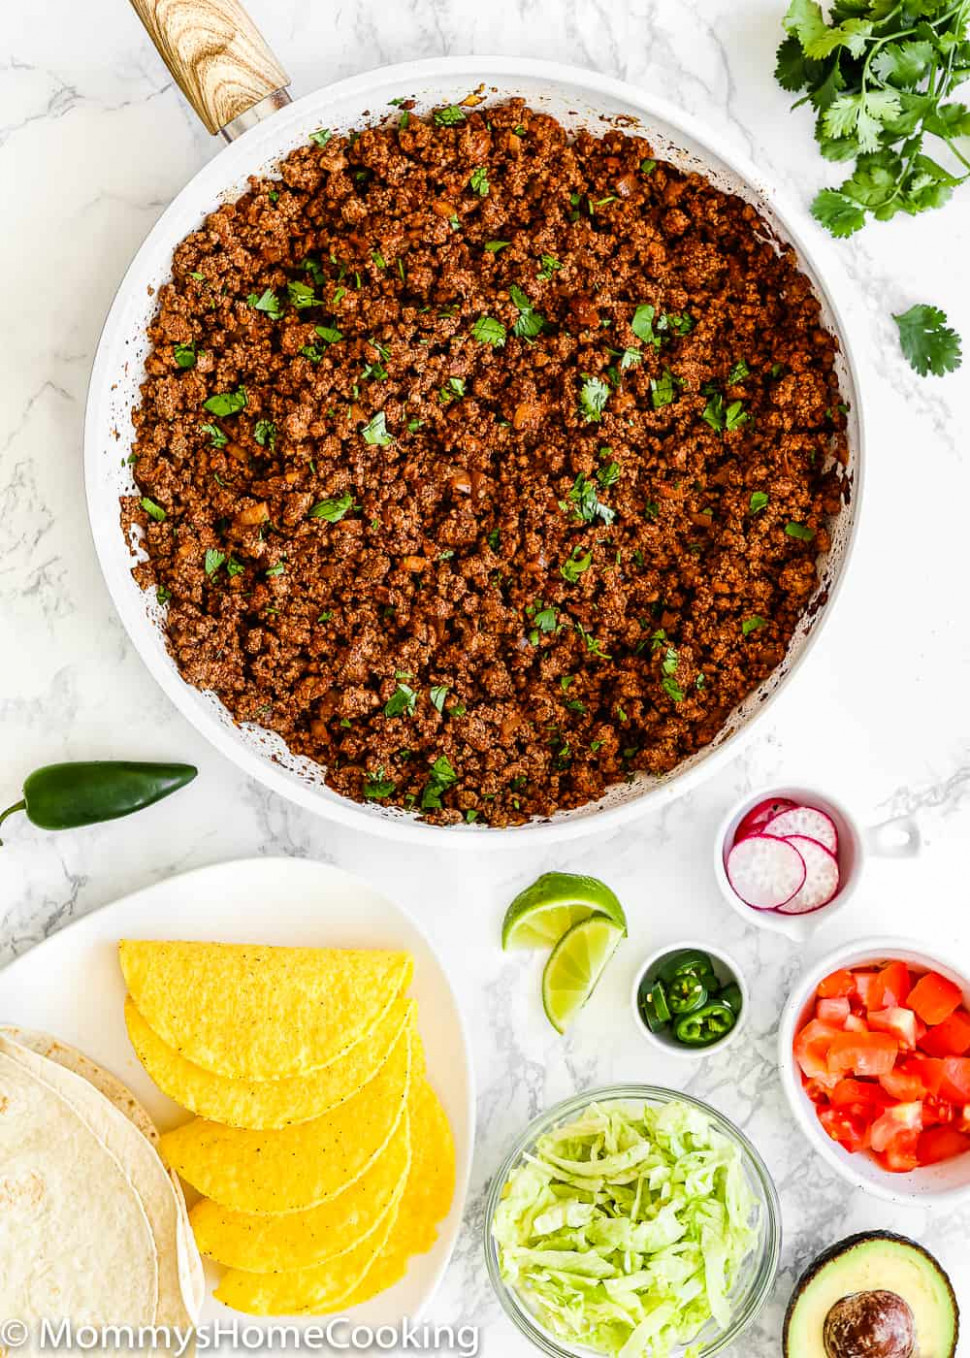 Easy Ground Beef For Tacos Recipe - Recipes With Ground Beef For Dinner